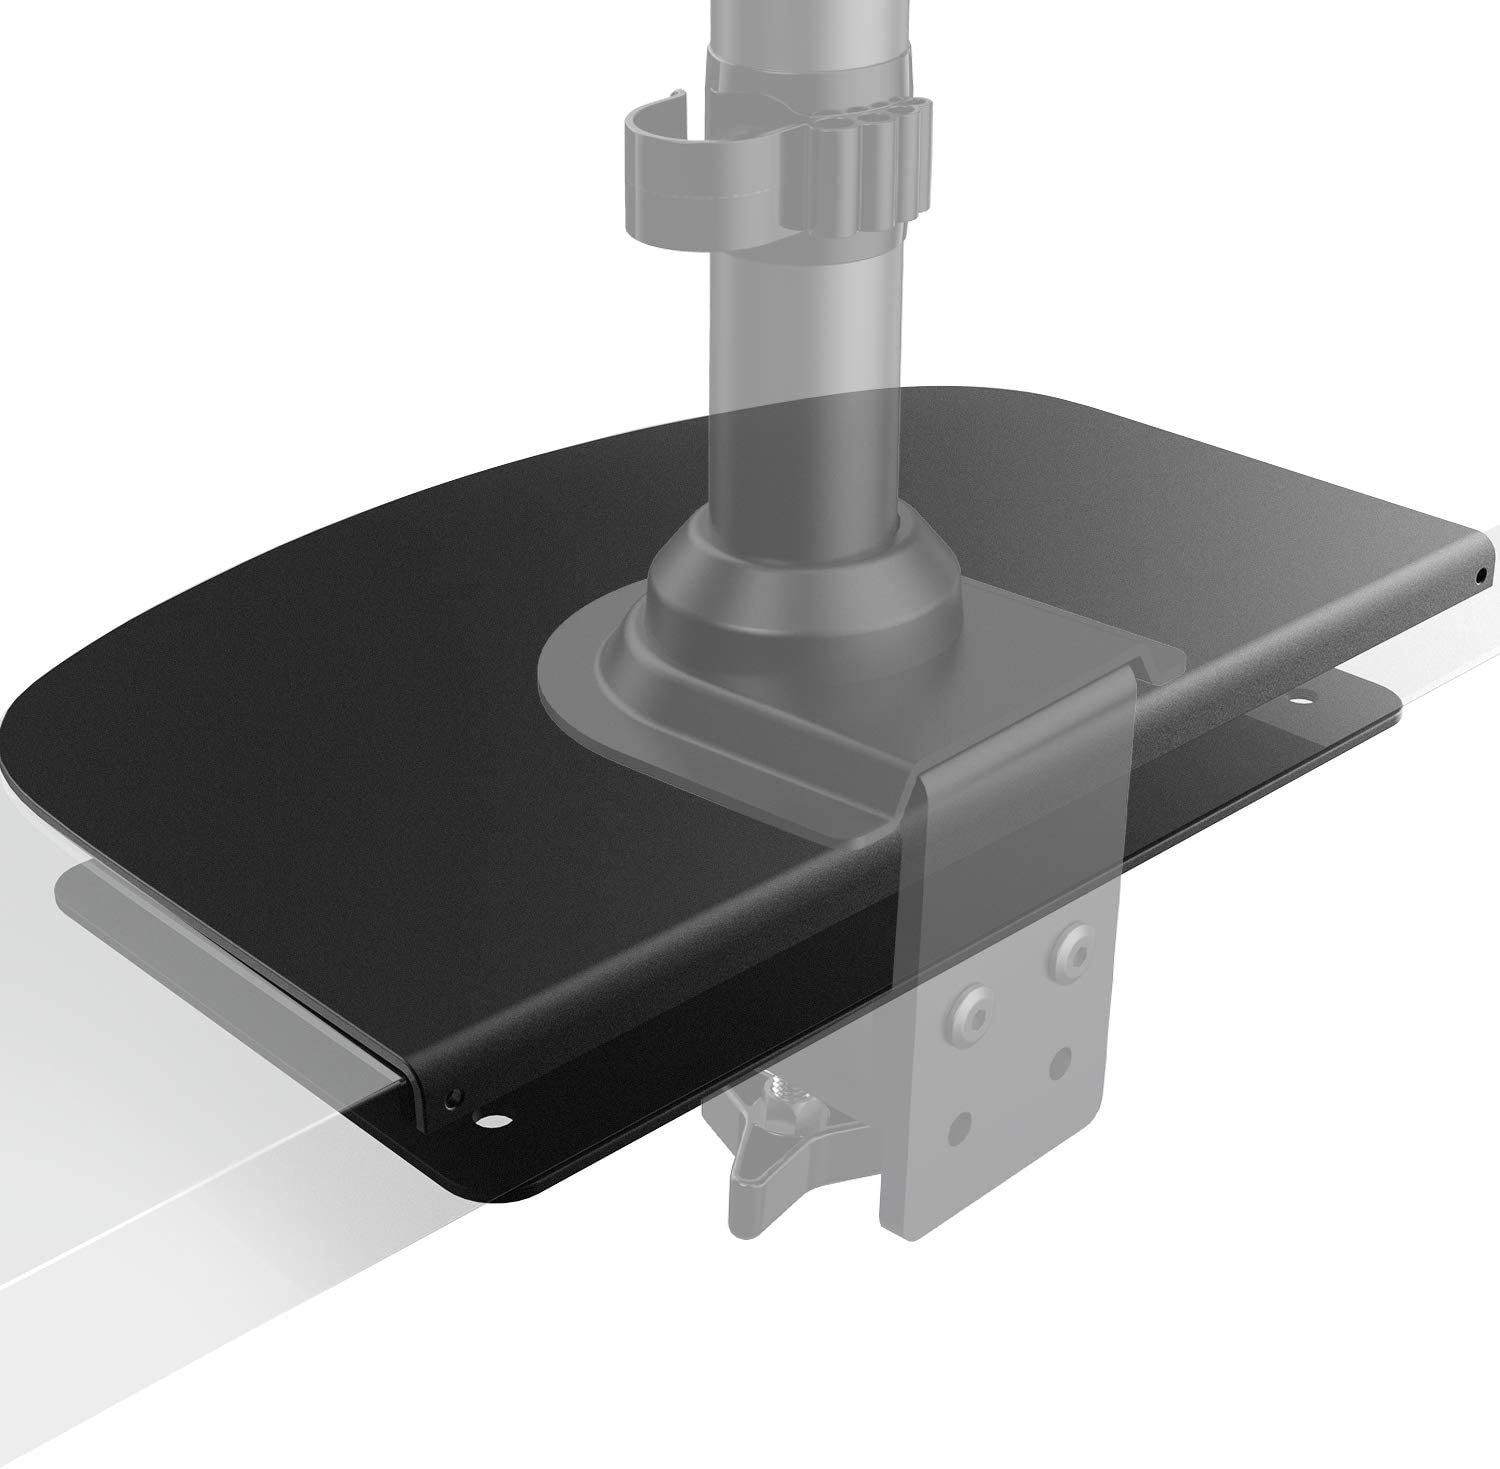 HUANUO Steel Monitor Mount Reinforcement Plate for Thin, Glass and Other Fragile Tabletop, Steel Bracket Plate Fits Most Monitor Stand C Clamp Installation